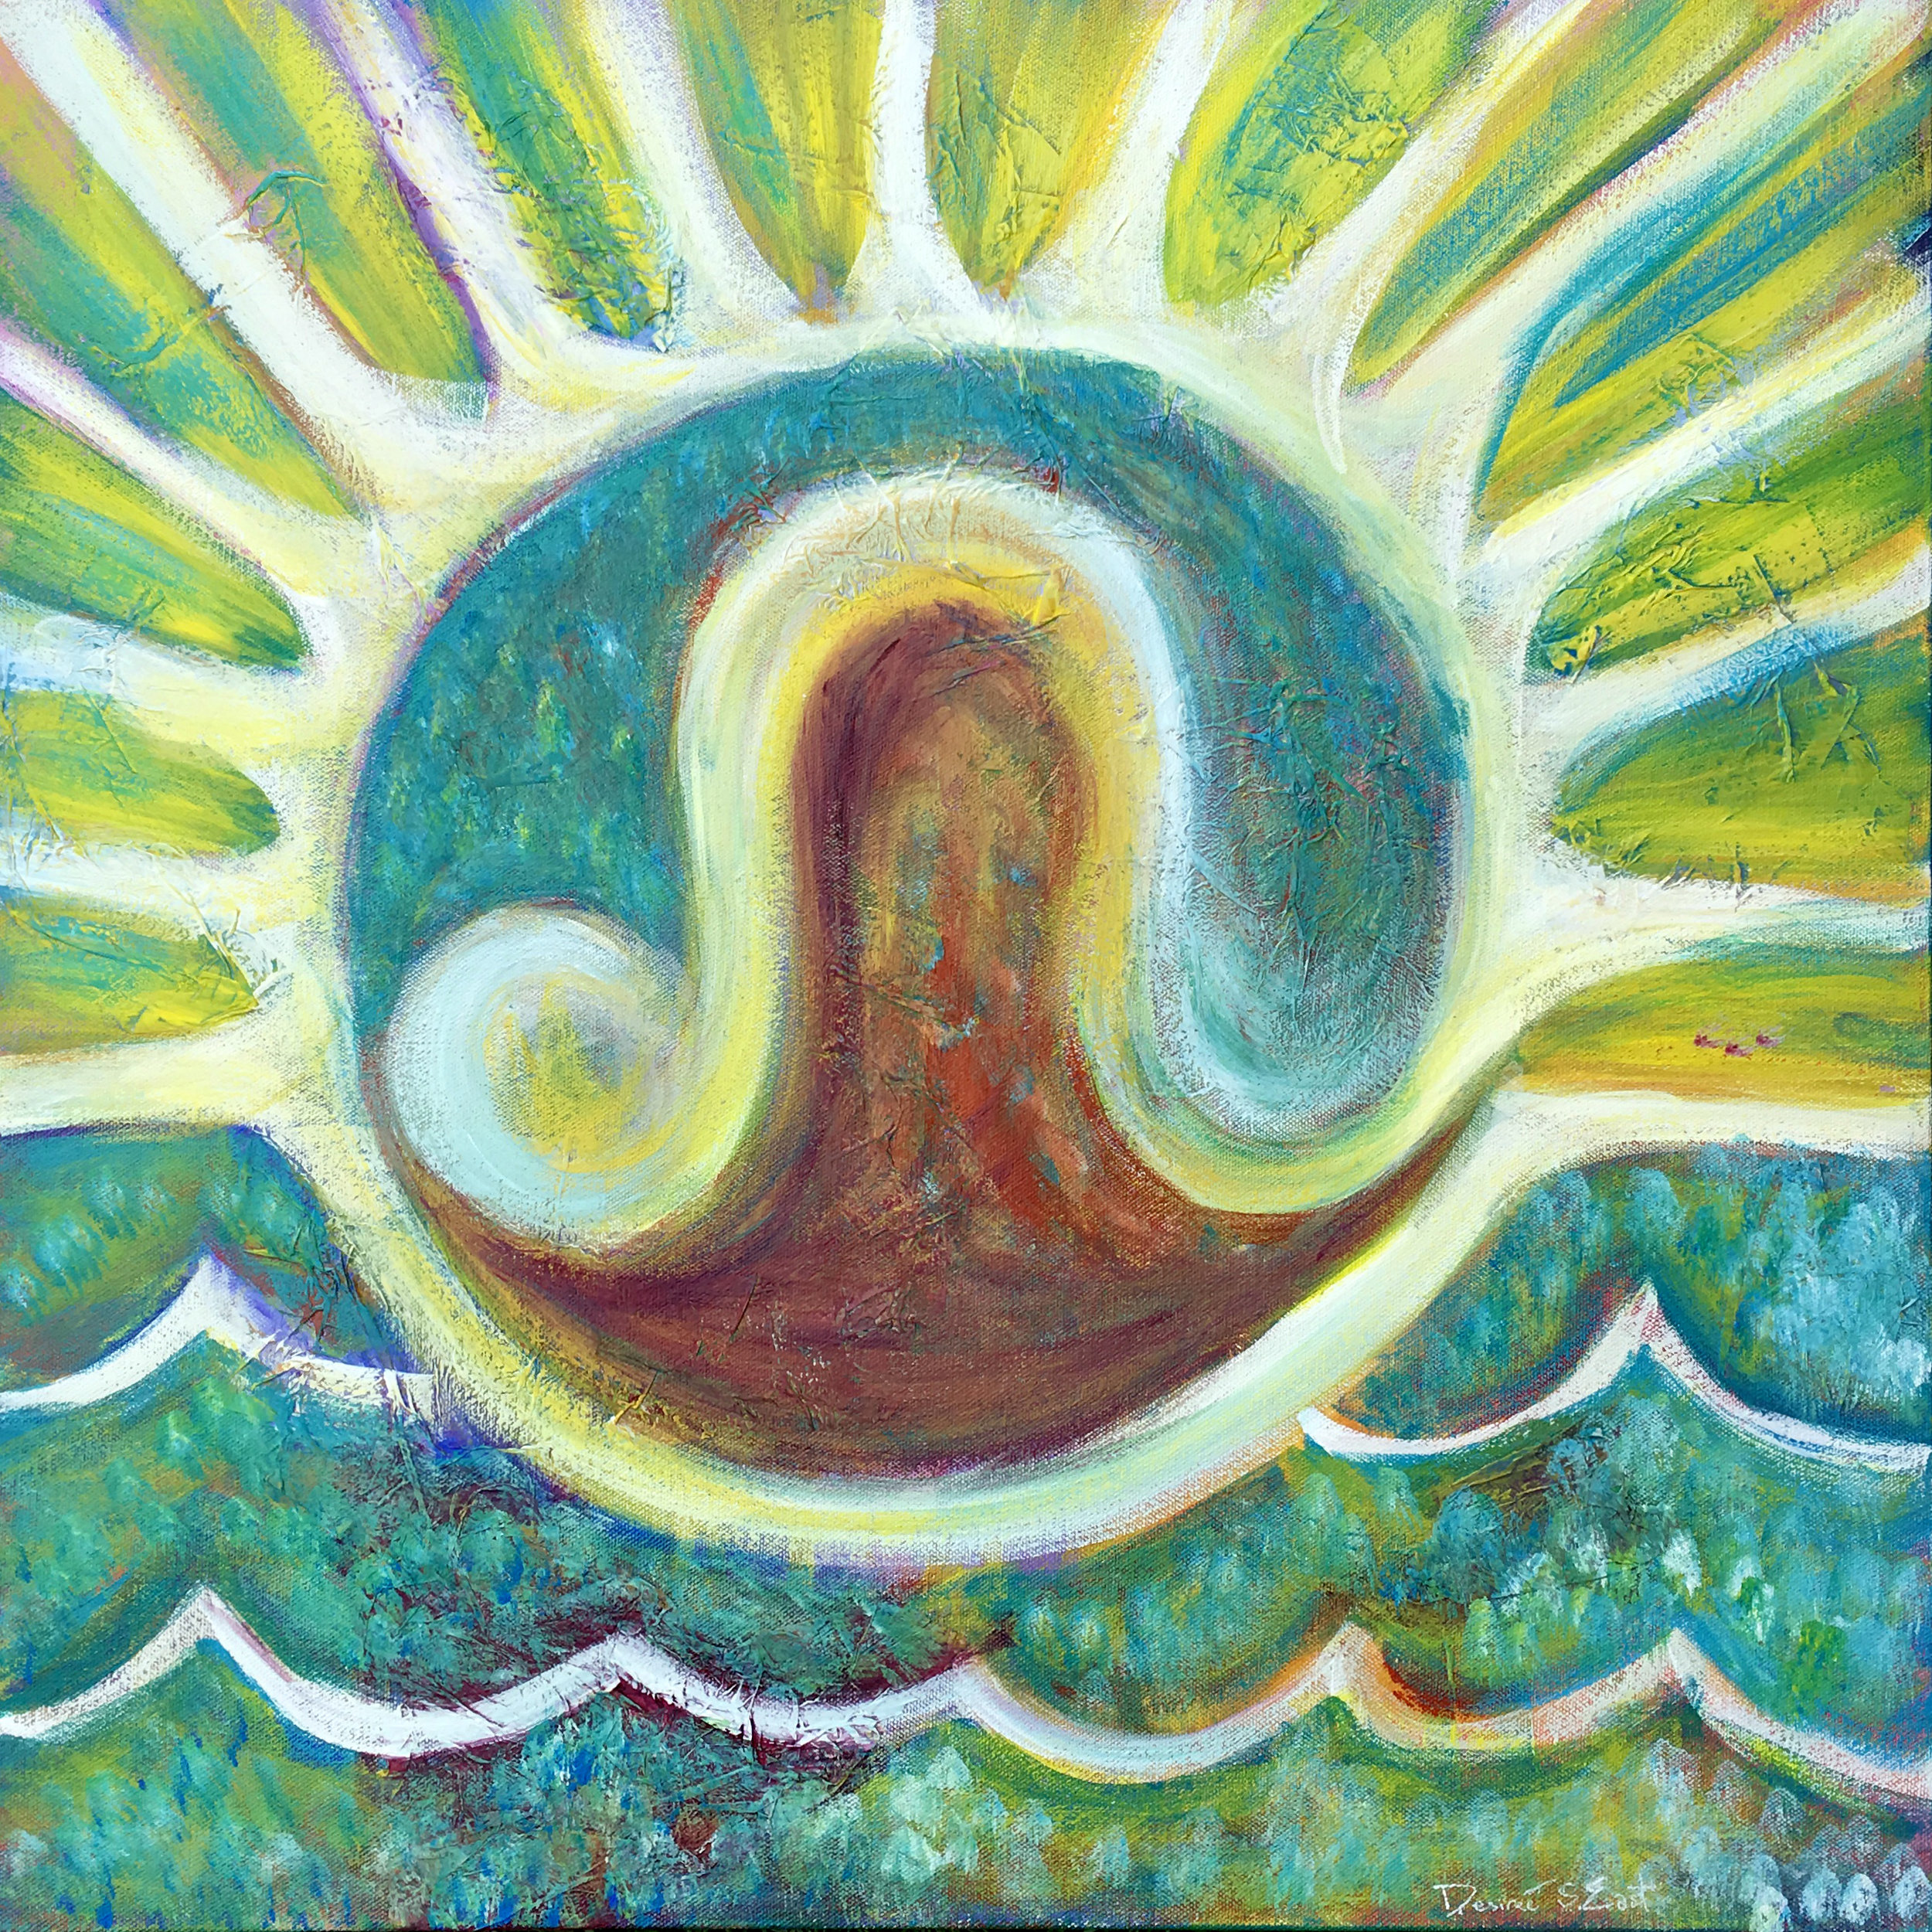 leo fire sun waves by desiree east.jpg